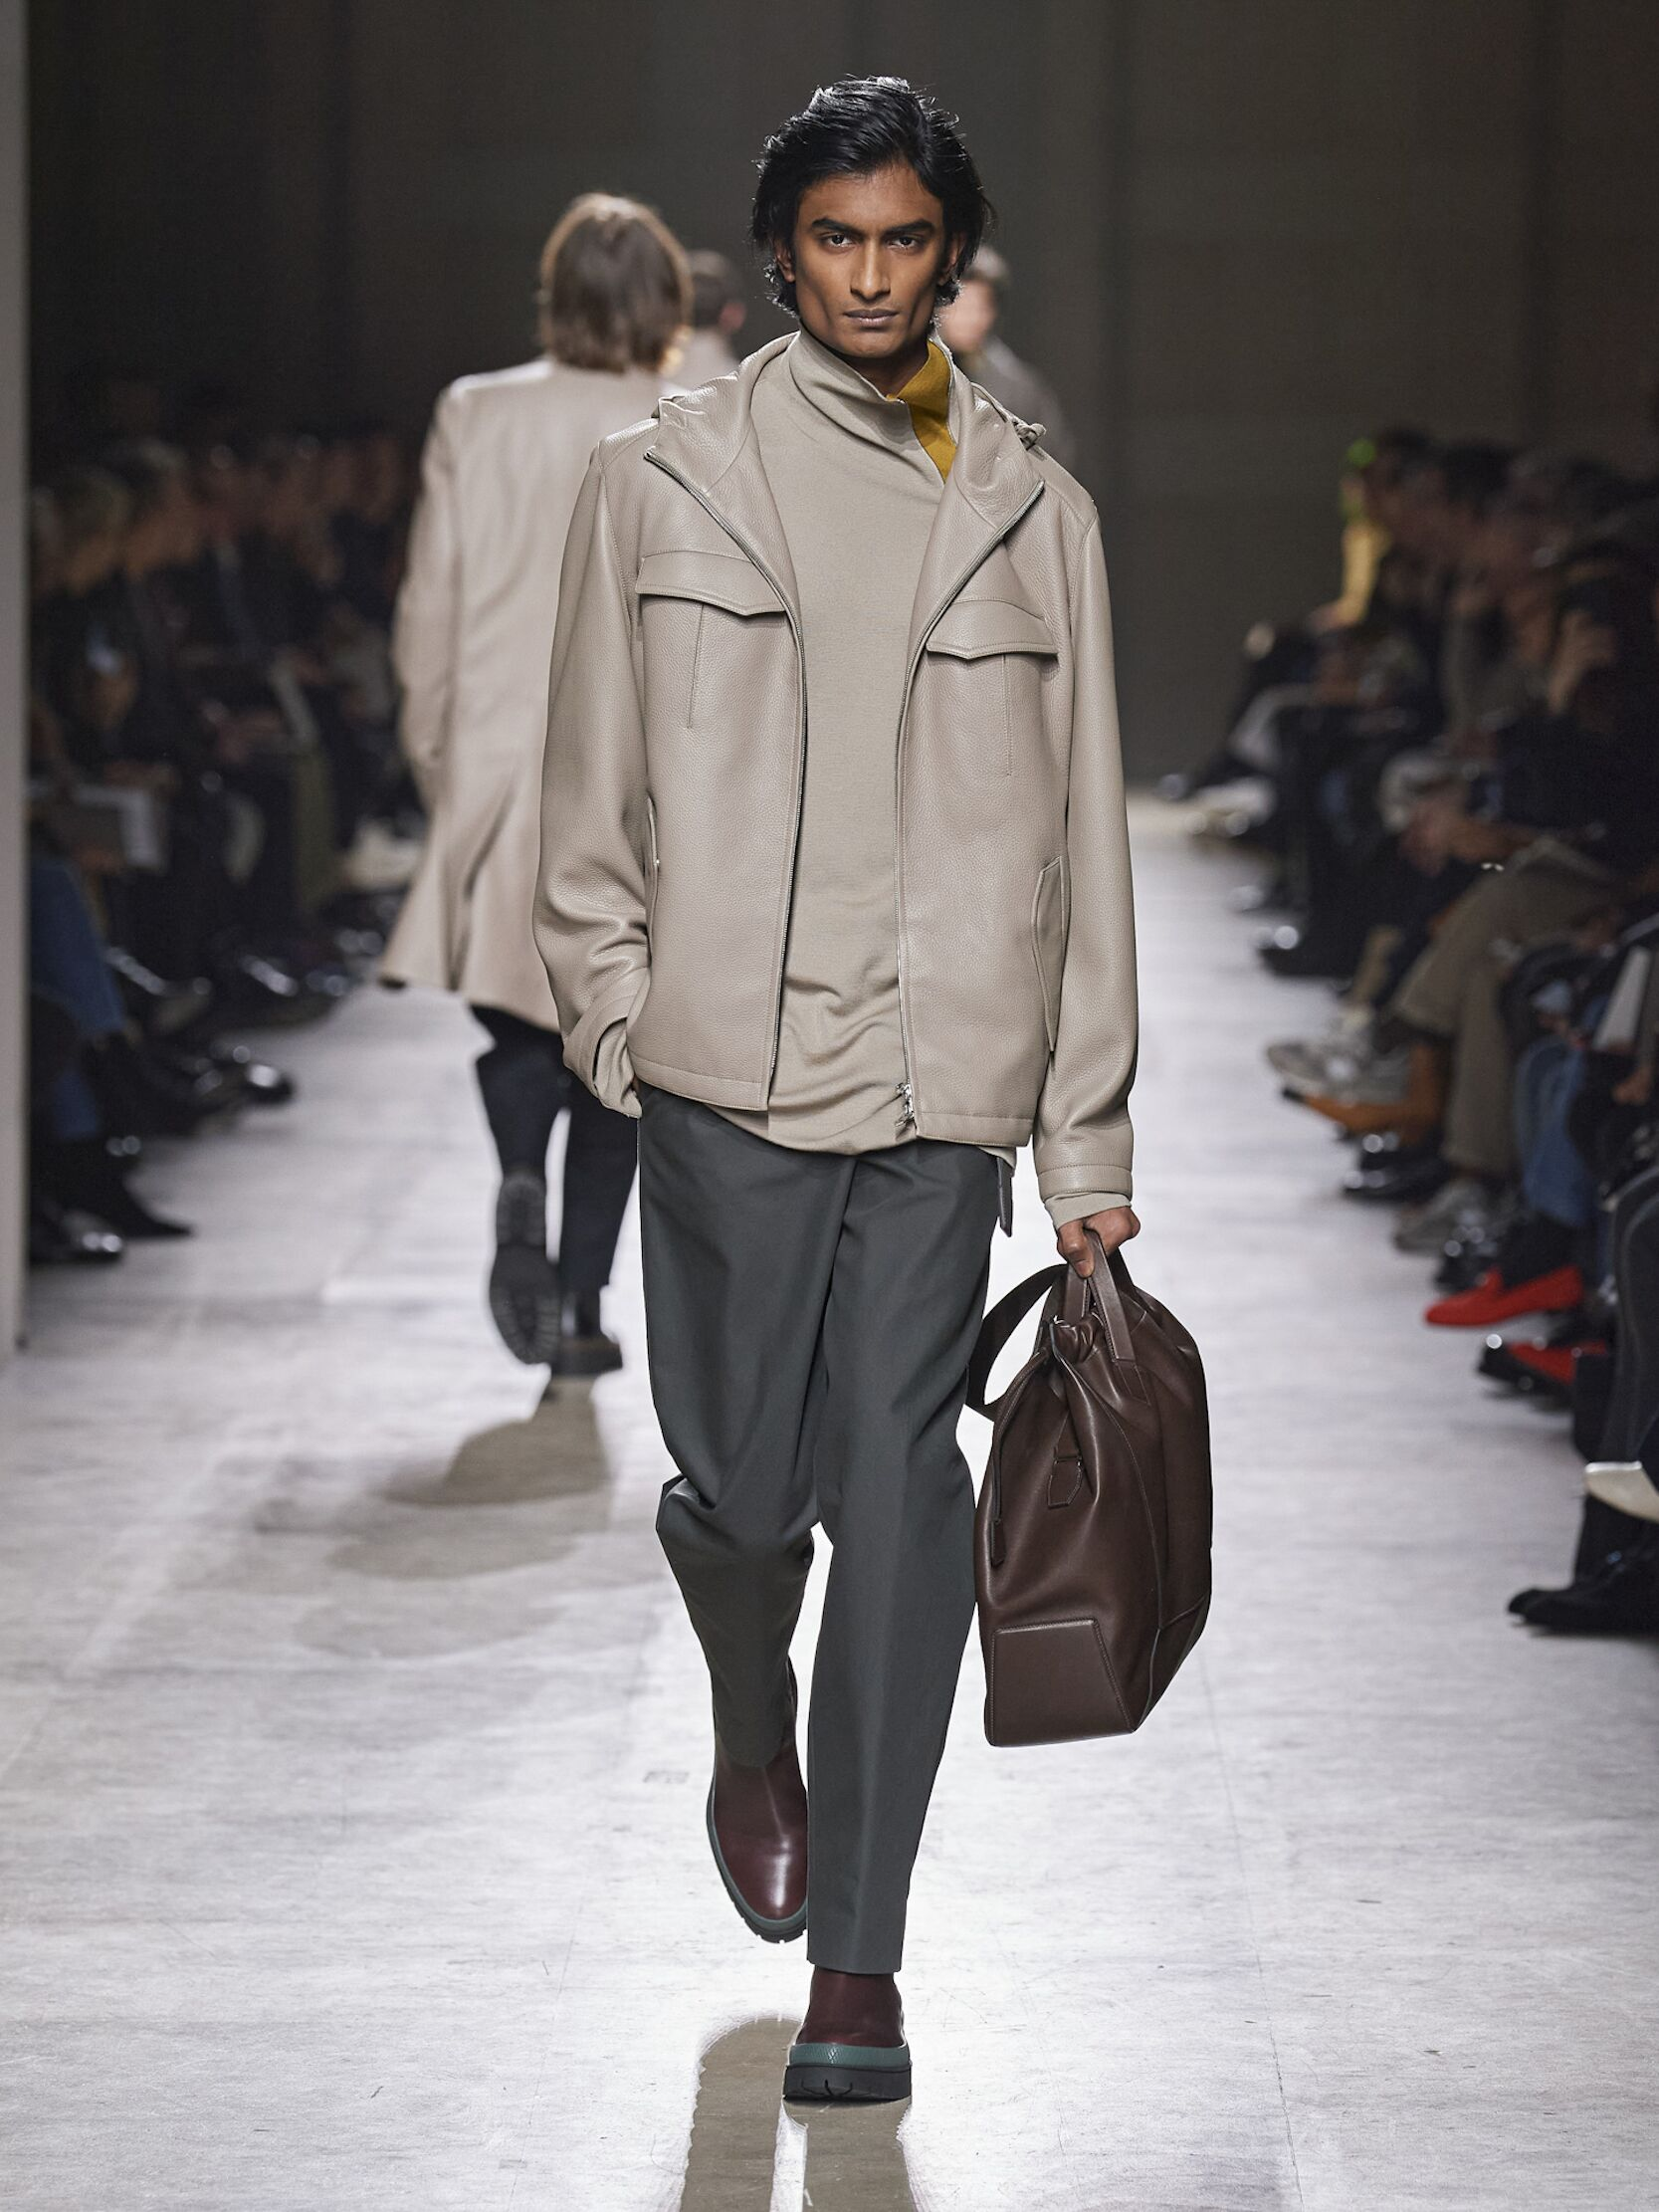 Hermès Men's Collection 2020-21